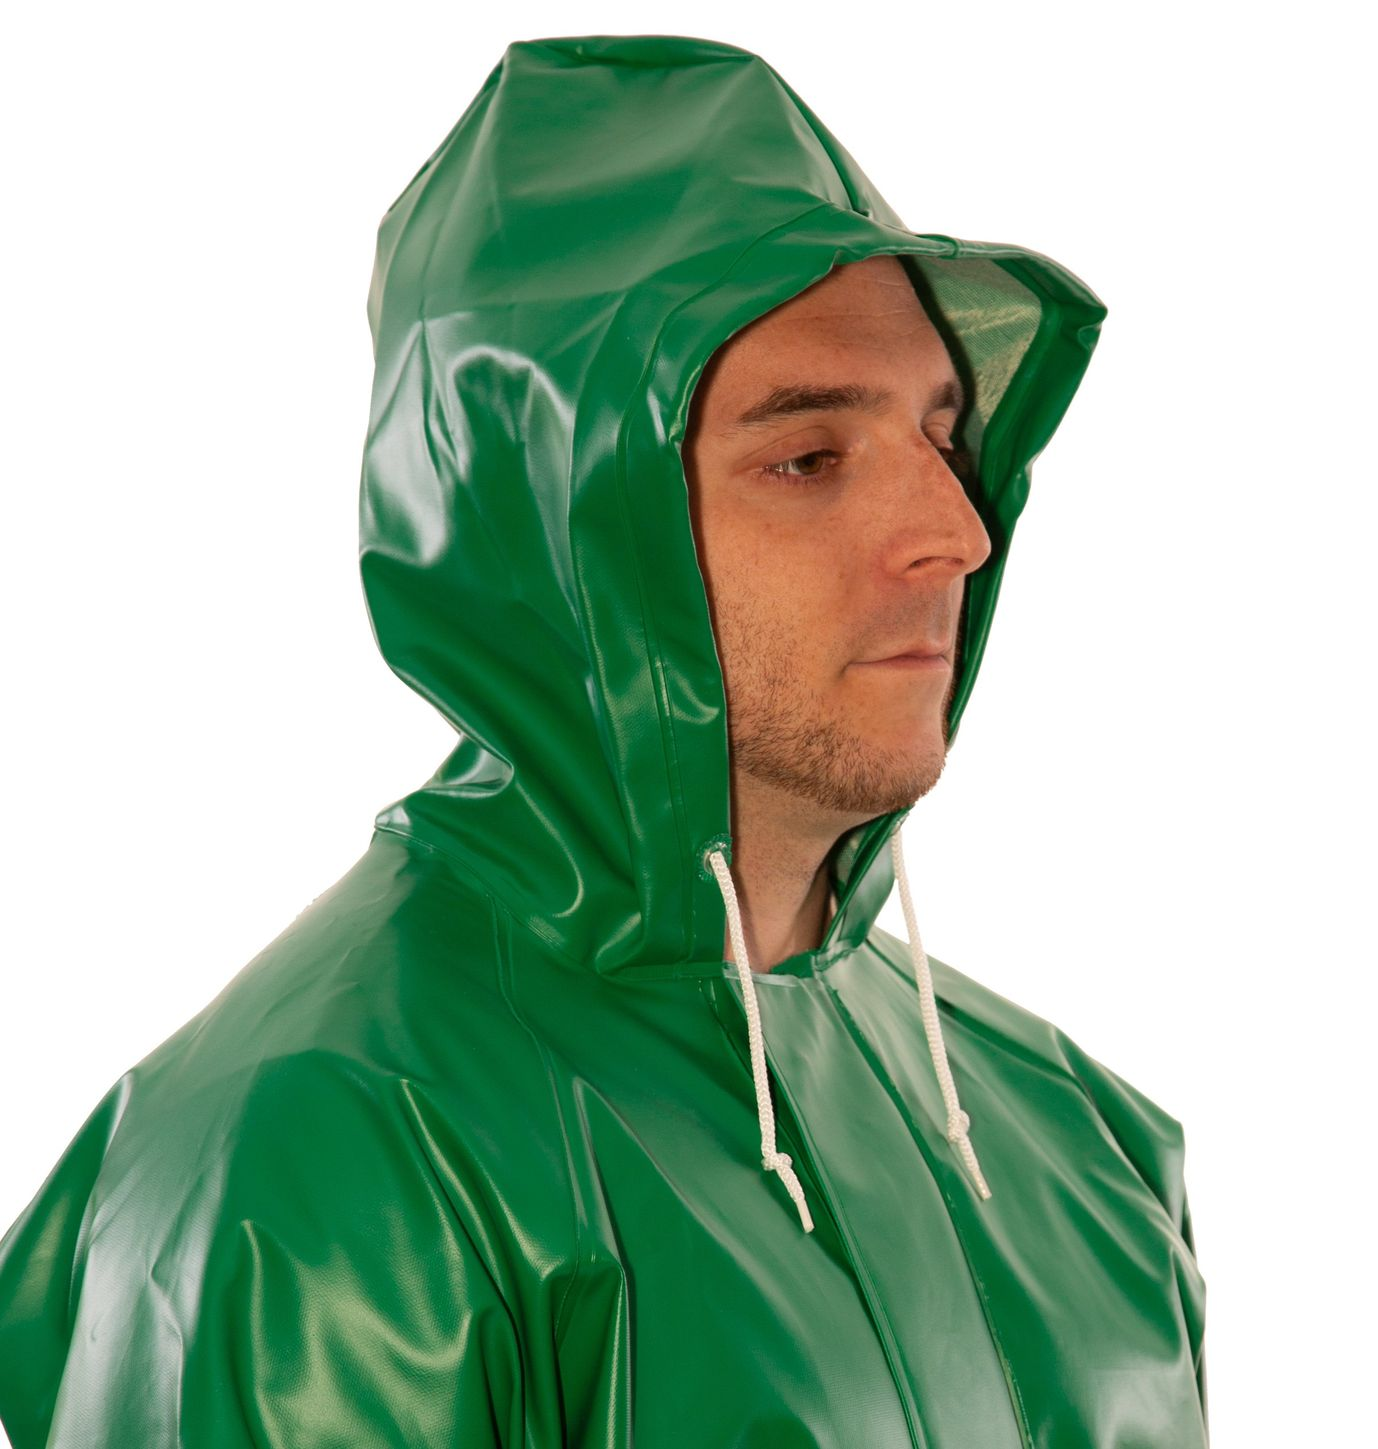 tingley-v41108-safetyflex-fire-resistant-coverall-pvc-coated-chemical-resistant-with-attached-hood-example.jpg